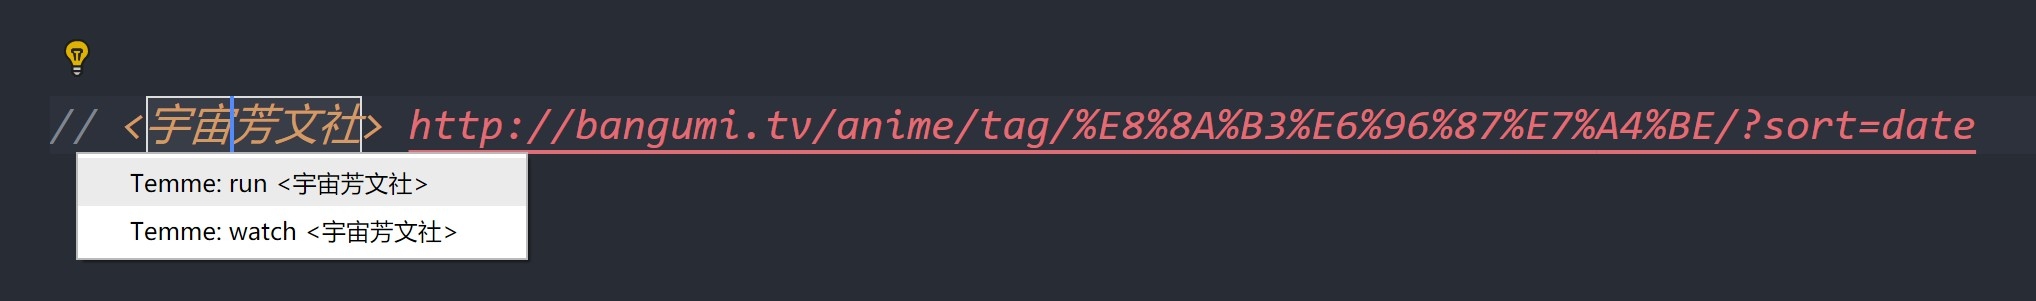 tagged-link-pattern